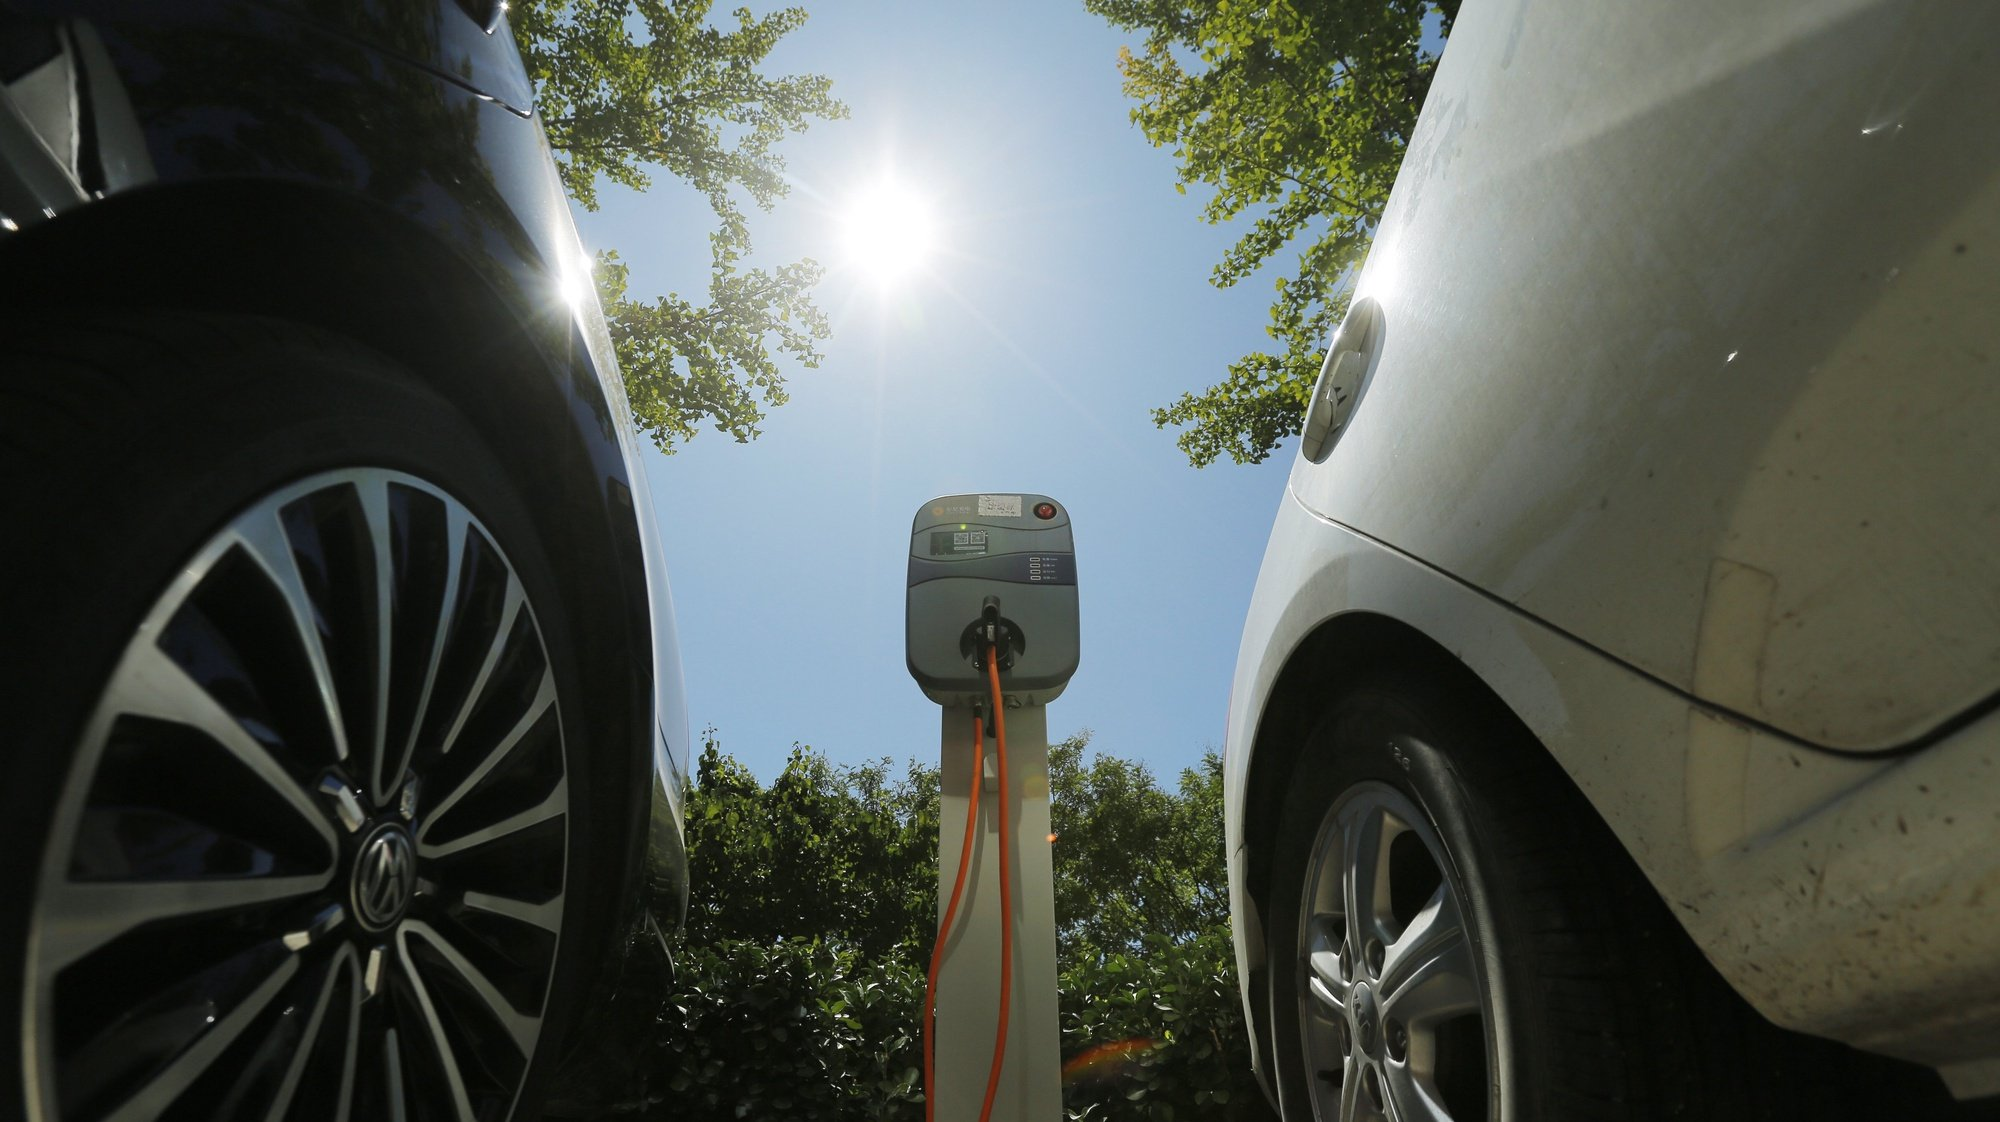 epa06197627 A charging pole for electric vehicles is seen at an electric vehicle charging station outside an apartment in Beijing, China, 11 September 2017. China plans to ban cars powered by fossil fuels in the future, while promoting hybrids and electric vehicles, Vice-minister of Ministry of Industry and Information Technology (MIIT) Xin Guobin said during a forum.  EPA/WU HONG